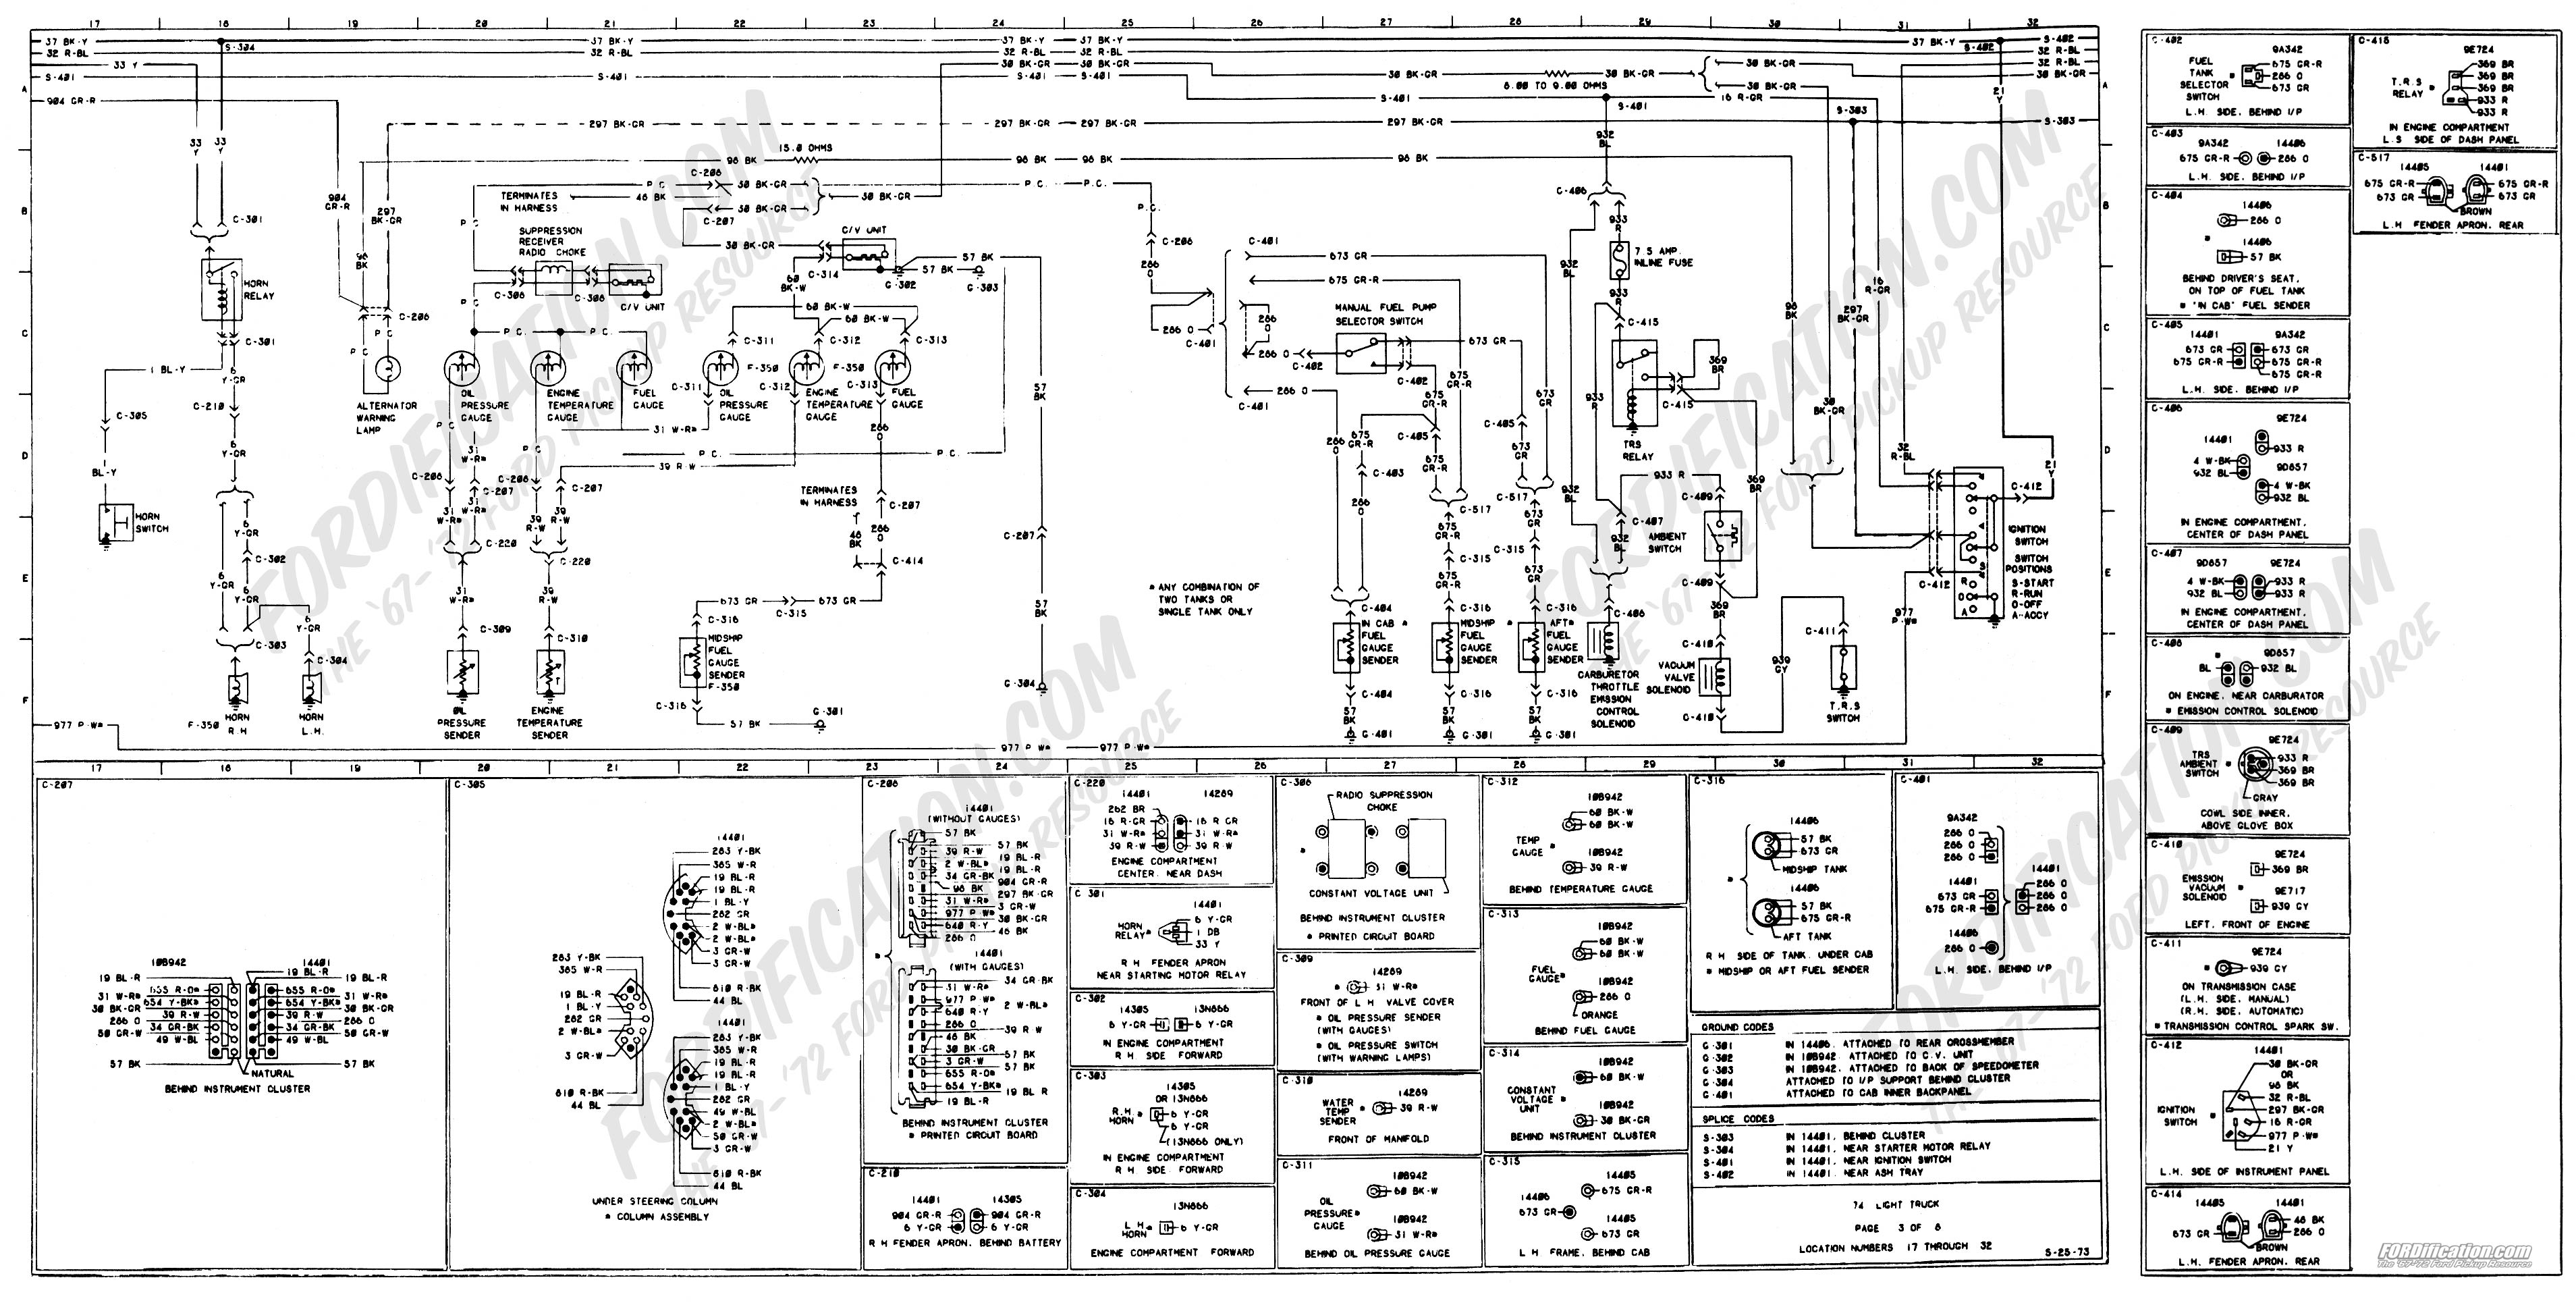 1984 Ford Pinto Wiring Diagram - Schematics Wiring Diagram  Ford Alternator Wiring Diagram on ford charging system diagrams, ford starter relay, ford g3 alternator, ford alternator wiring harness, ford alternator connections, ford 6g alternator wiring, ford alternator system, ford voltage regulator, ford truck wiring diagrams, ford 3 wire alternator diagram, ford alternator wiring hook up, ford 1 wire alternator wiring, alternator parts diagram, ford 6.0 alternator, ford alternator pinout, ford truck alternator diagram, ford alternator identification, ford 1-wire alternator conversion, ford 3g alternator wiring, ford alternator regulator diagram,